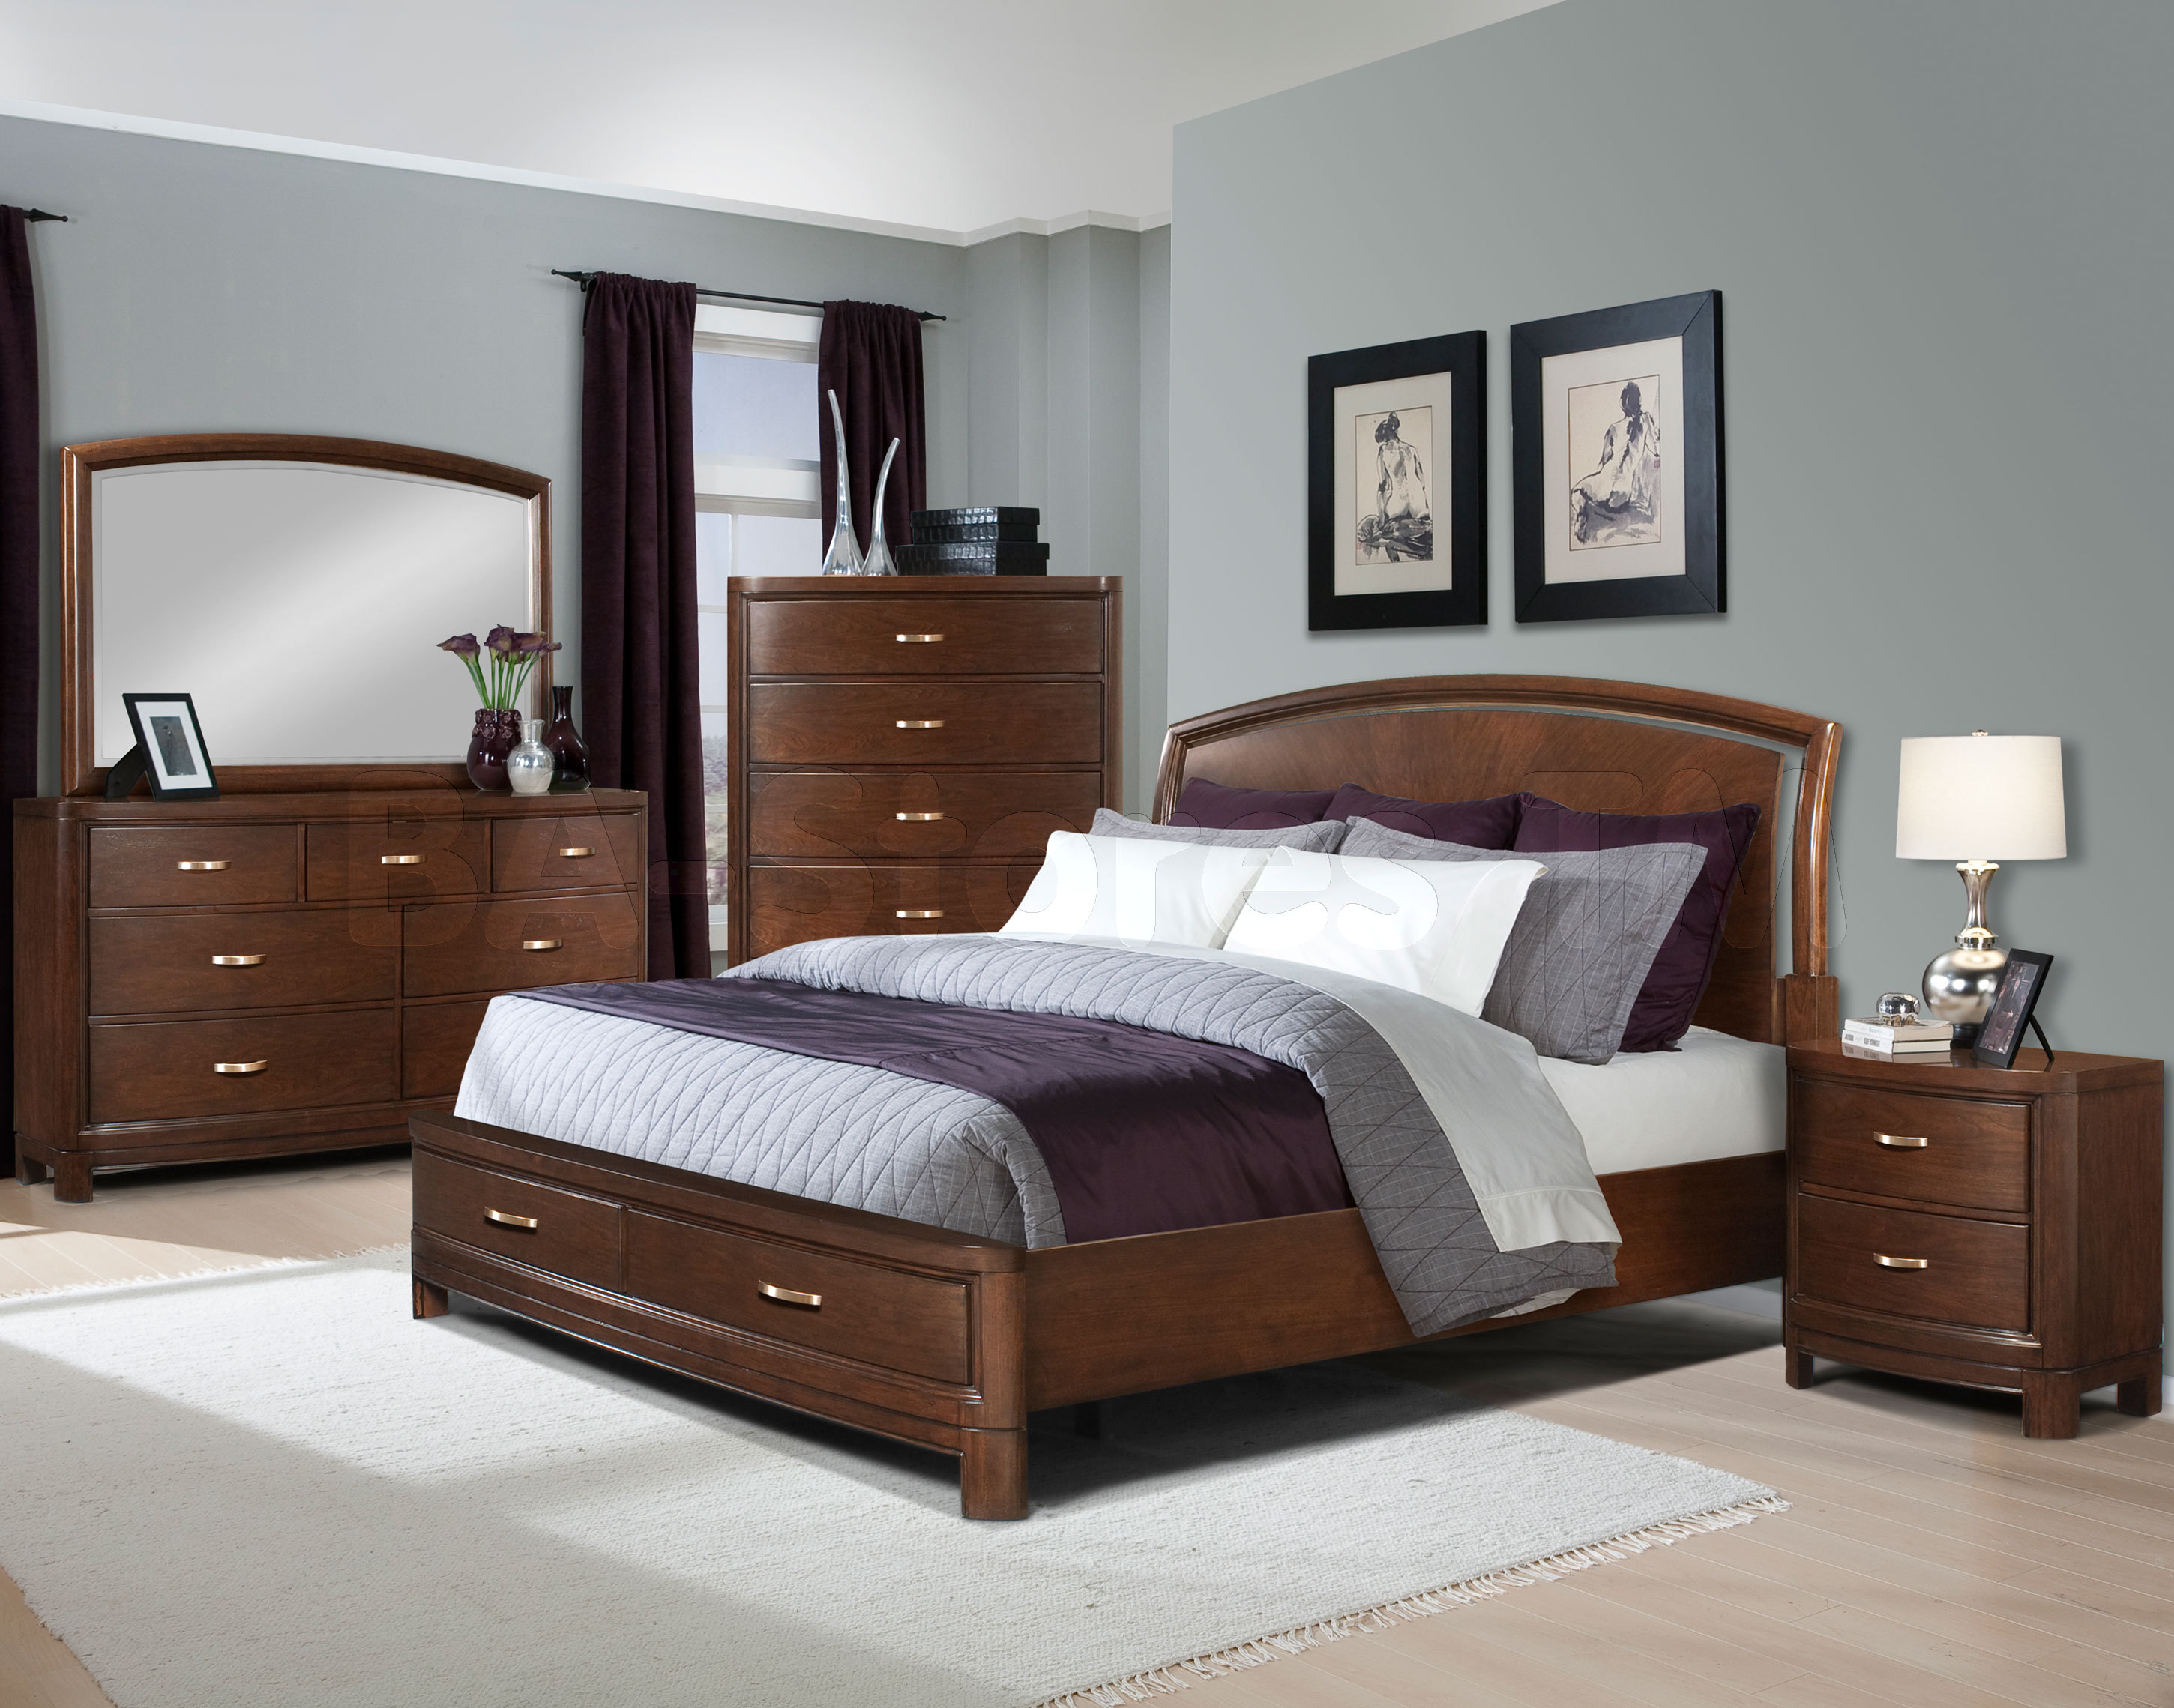 Bedroom Ideas With Brown Furniture Brooklyn Apartment